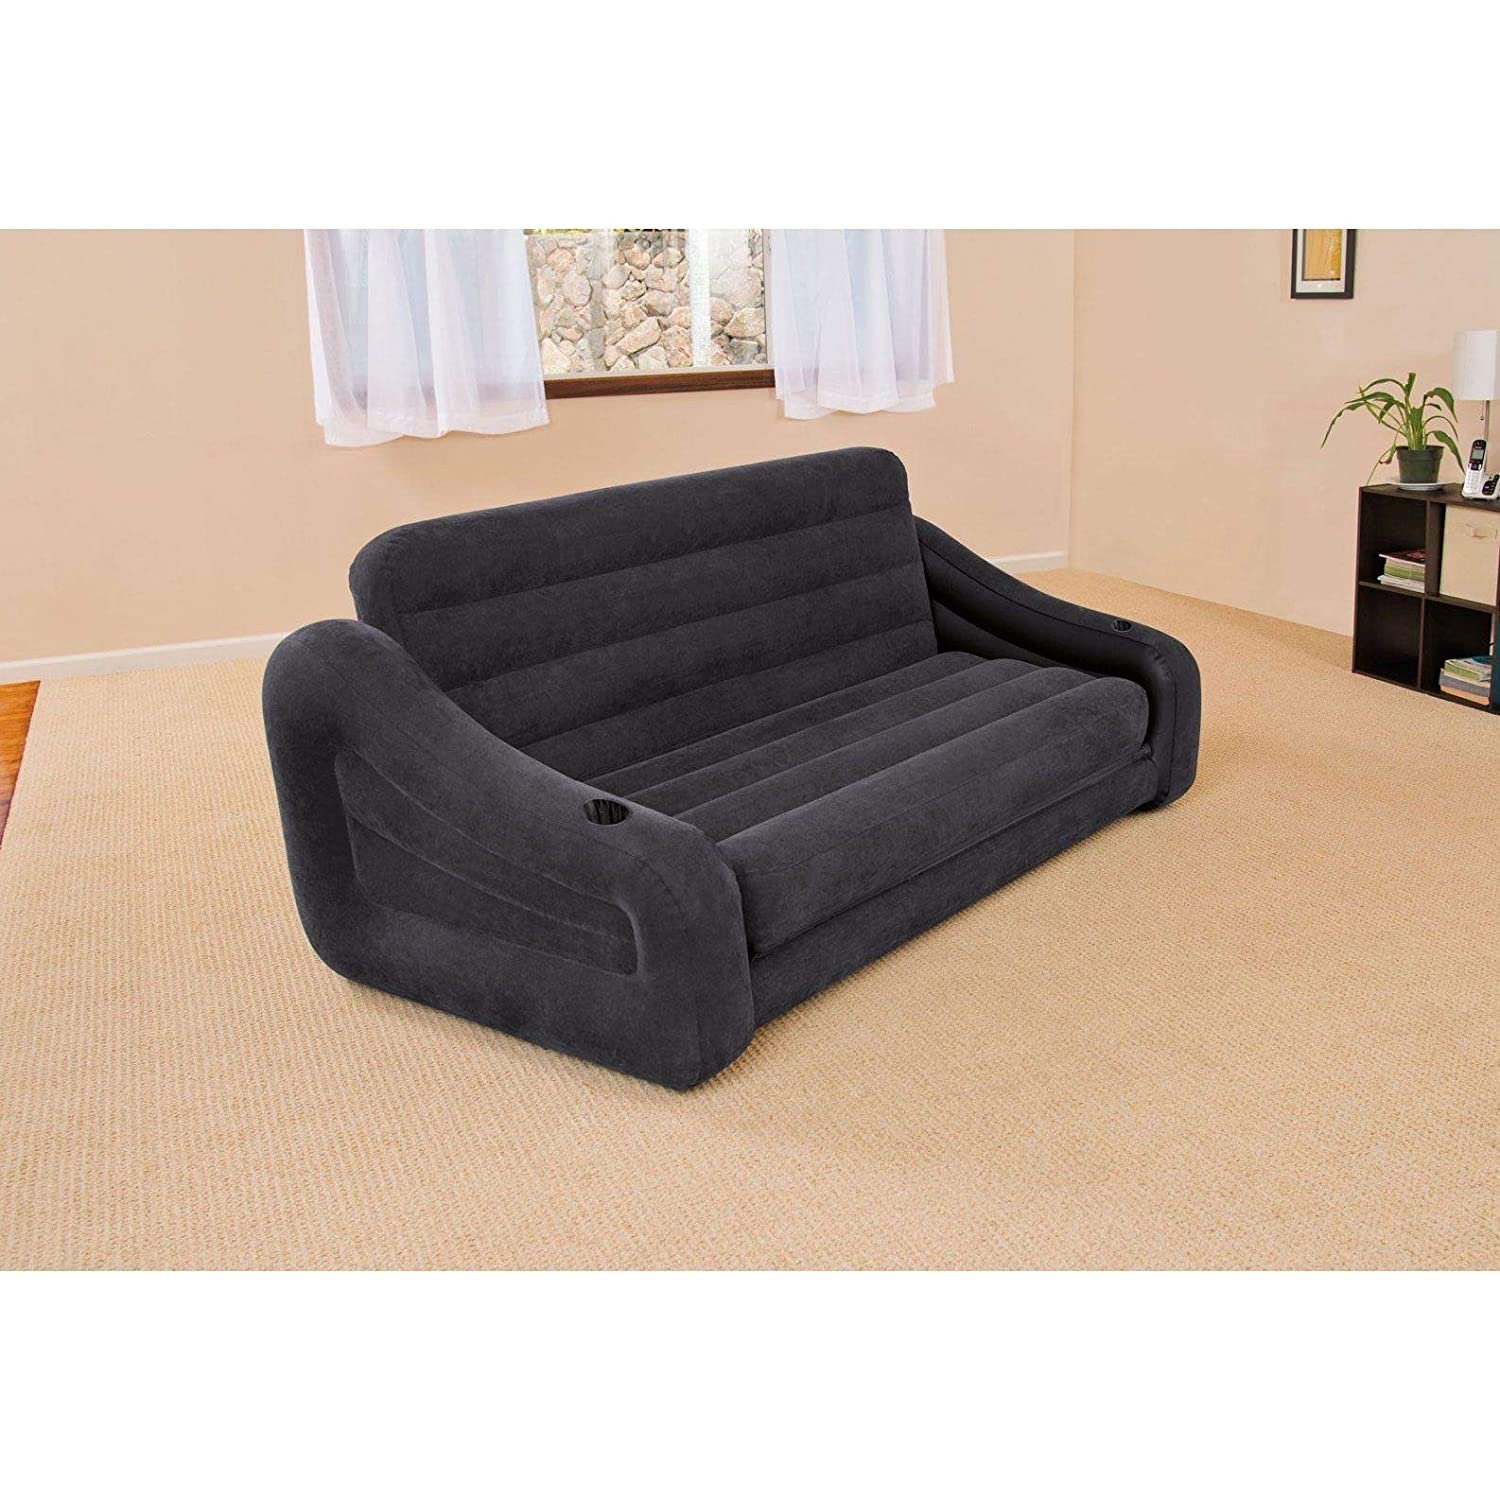 NEW Couch Bed Sofa Sectional Sleeper Futon Living Room Furniture Loveseat Guest